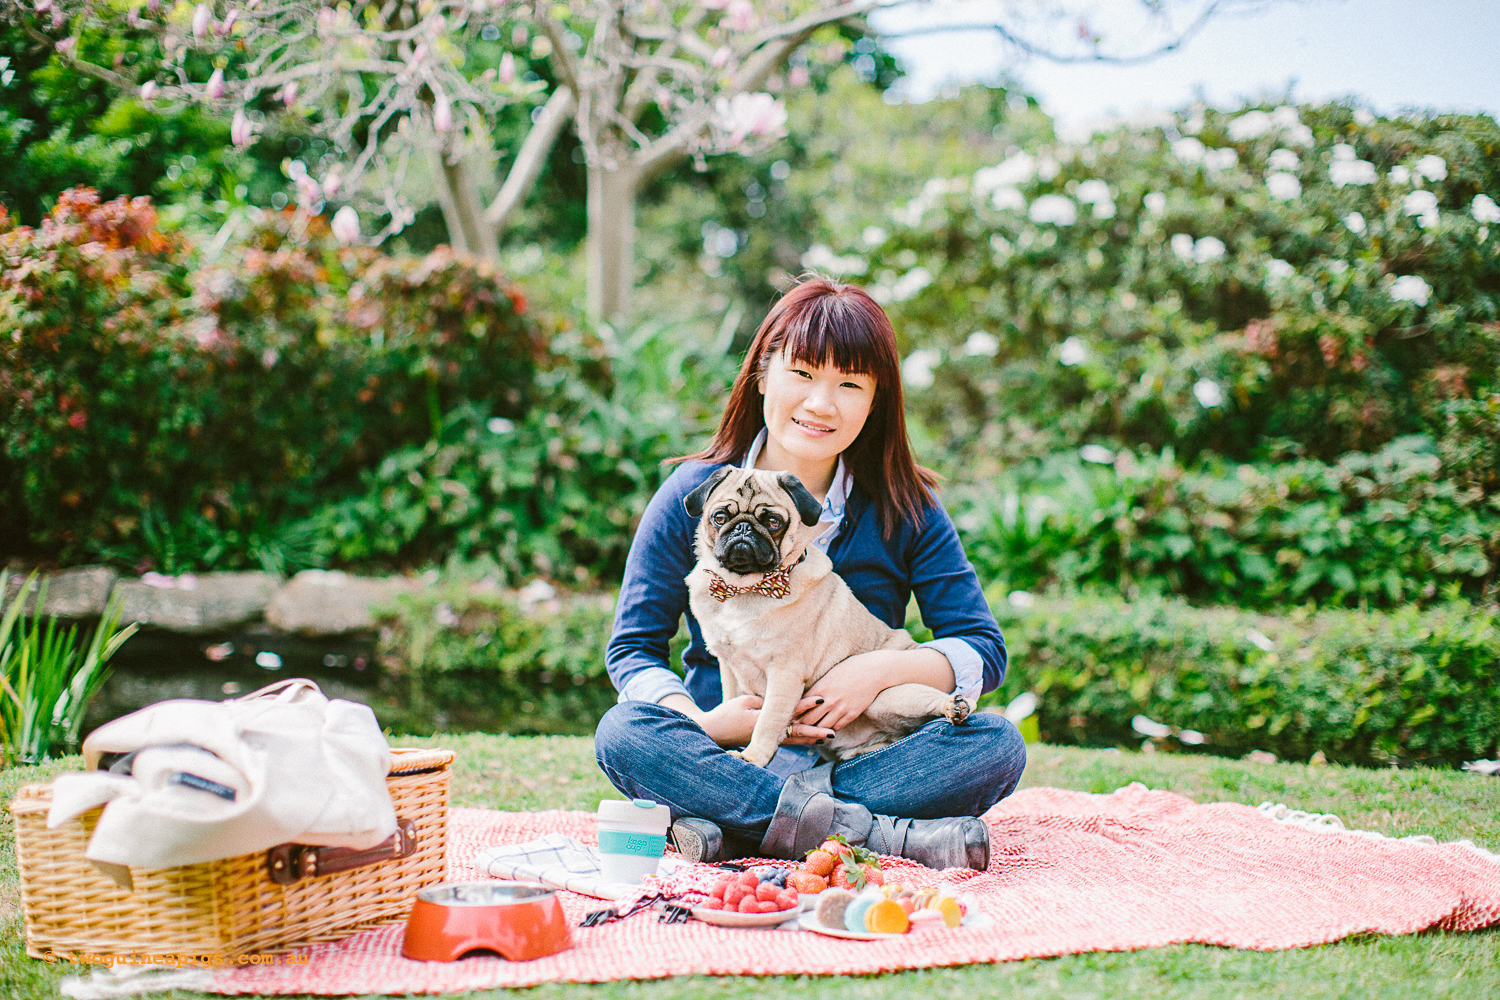 twoguineapigs_pet_photography_oh_jaffa_picnic_pugs_rodger_1500-18.jpg